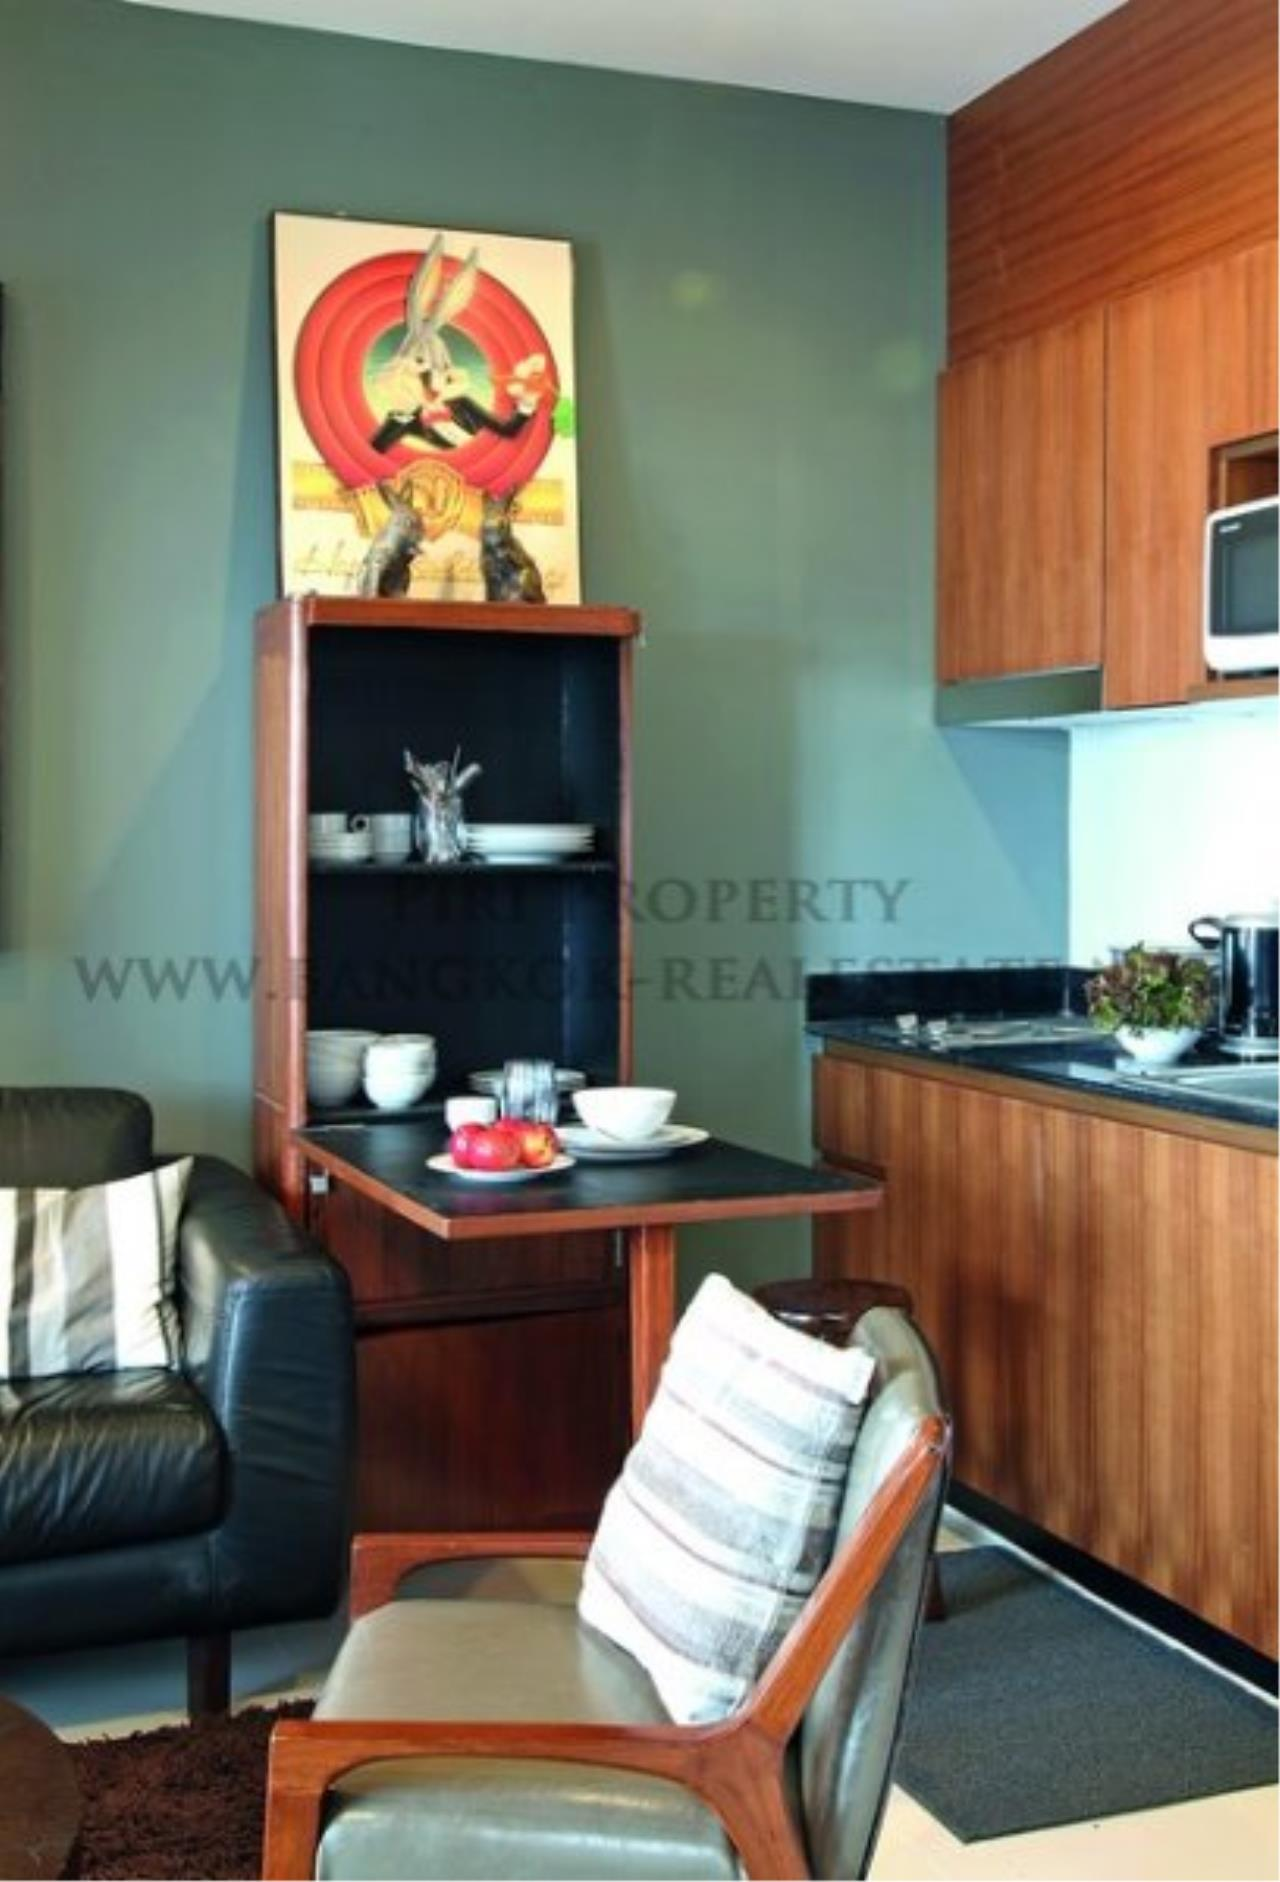 Piri Property Agency's Exclusive Designer Unit - 1 Bedroom in the IDEO Verve building 2